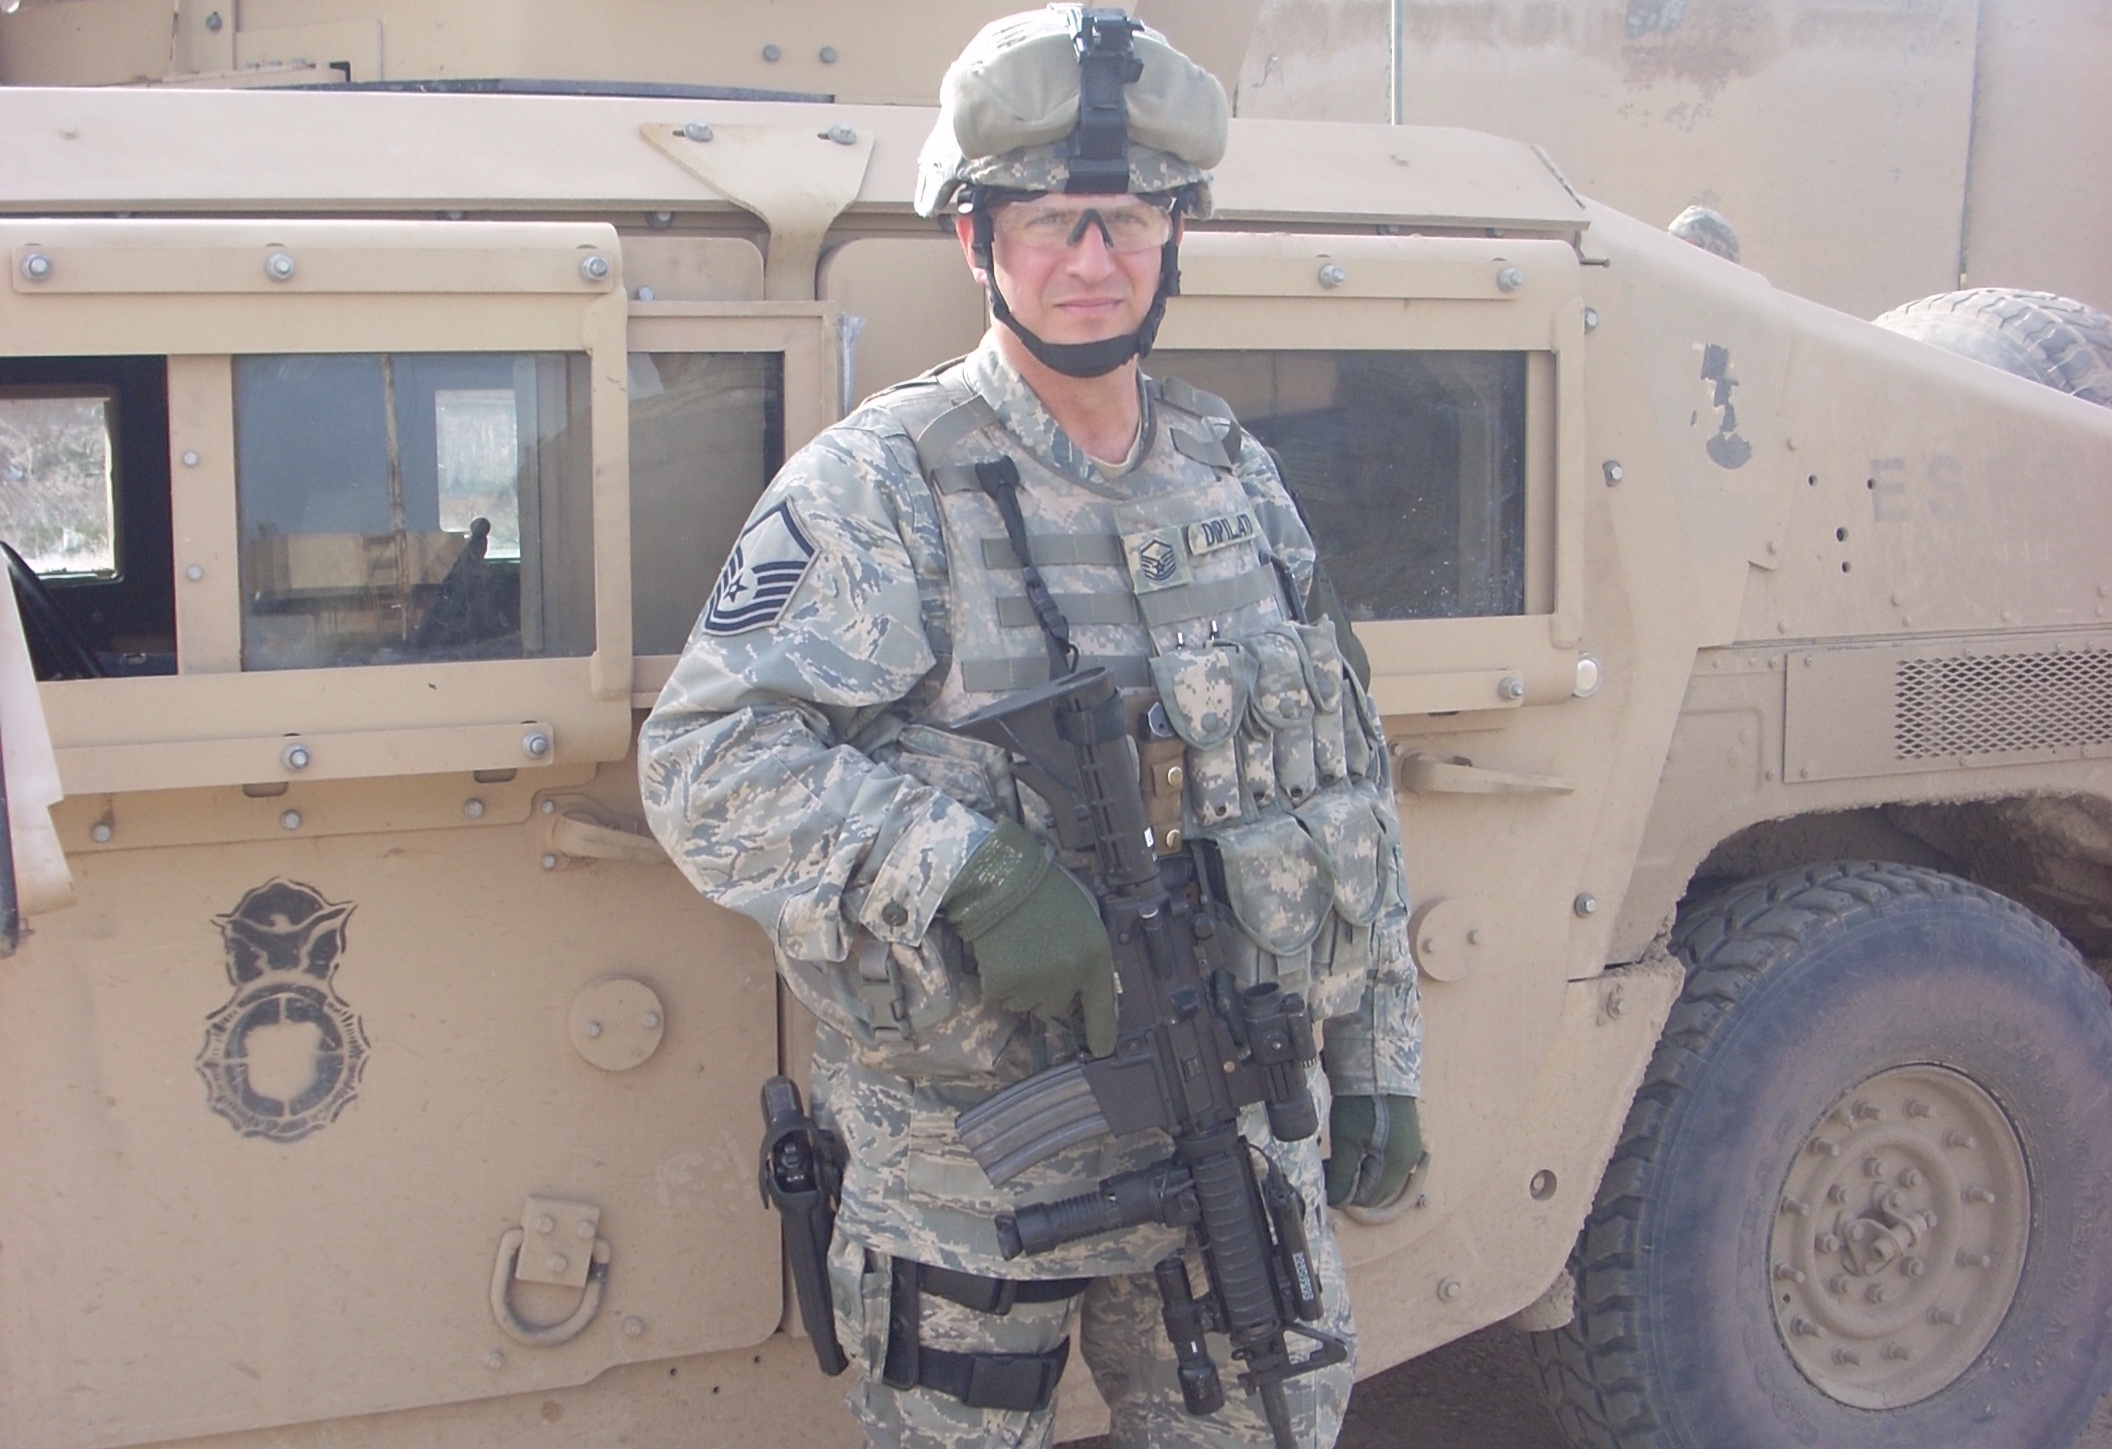 Meet the trainer - Our trainer has years of military and law enforcement experience.